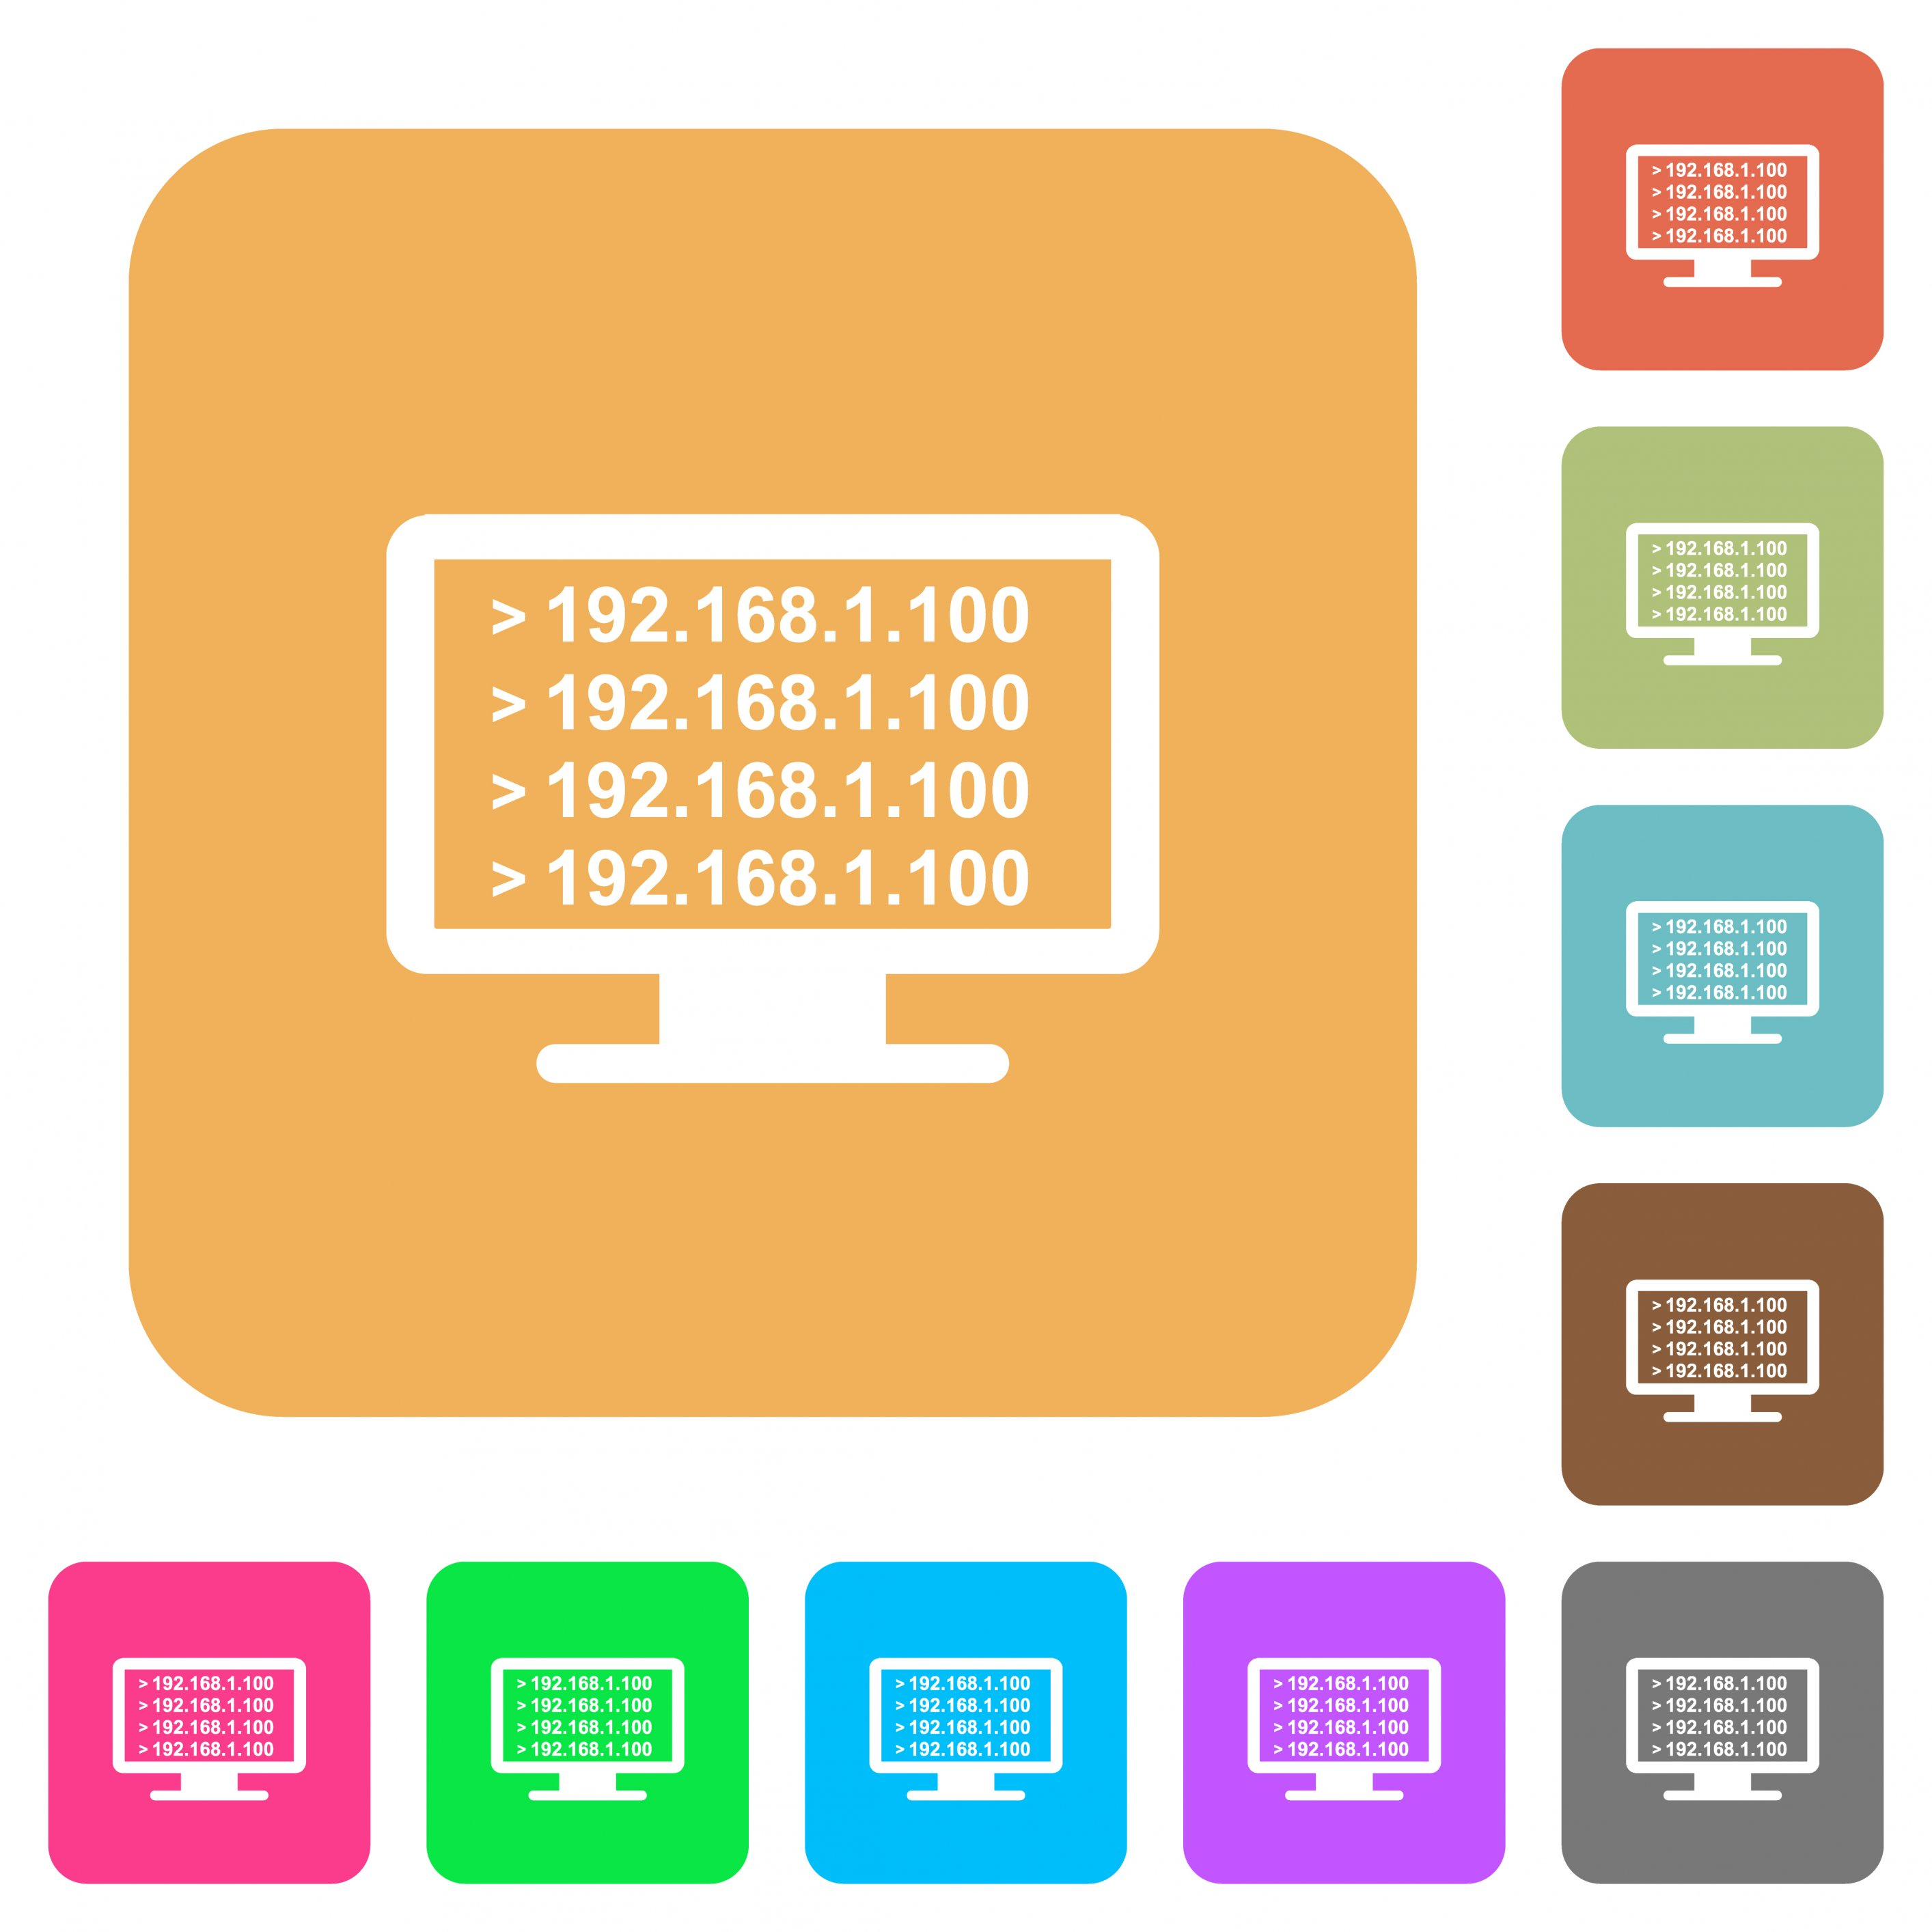 Ping remote computer flat icons on rounded square vivid color backgrounds. - Free image